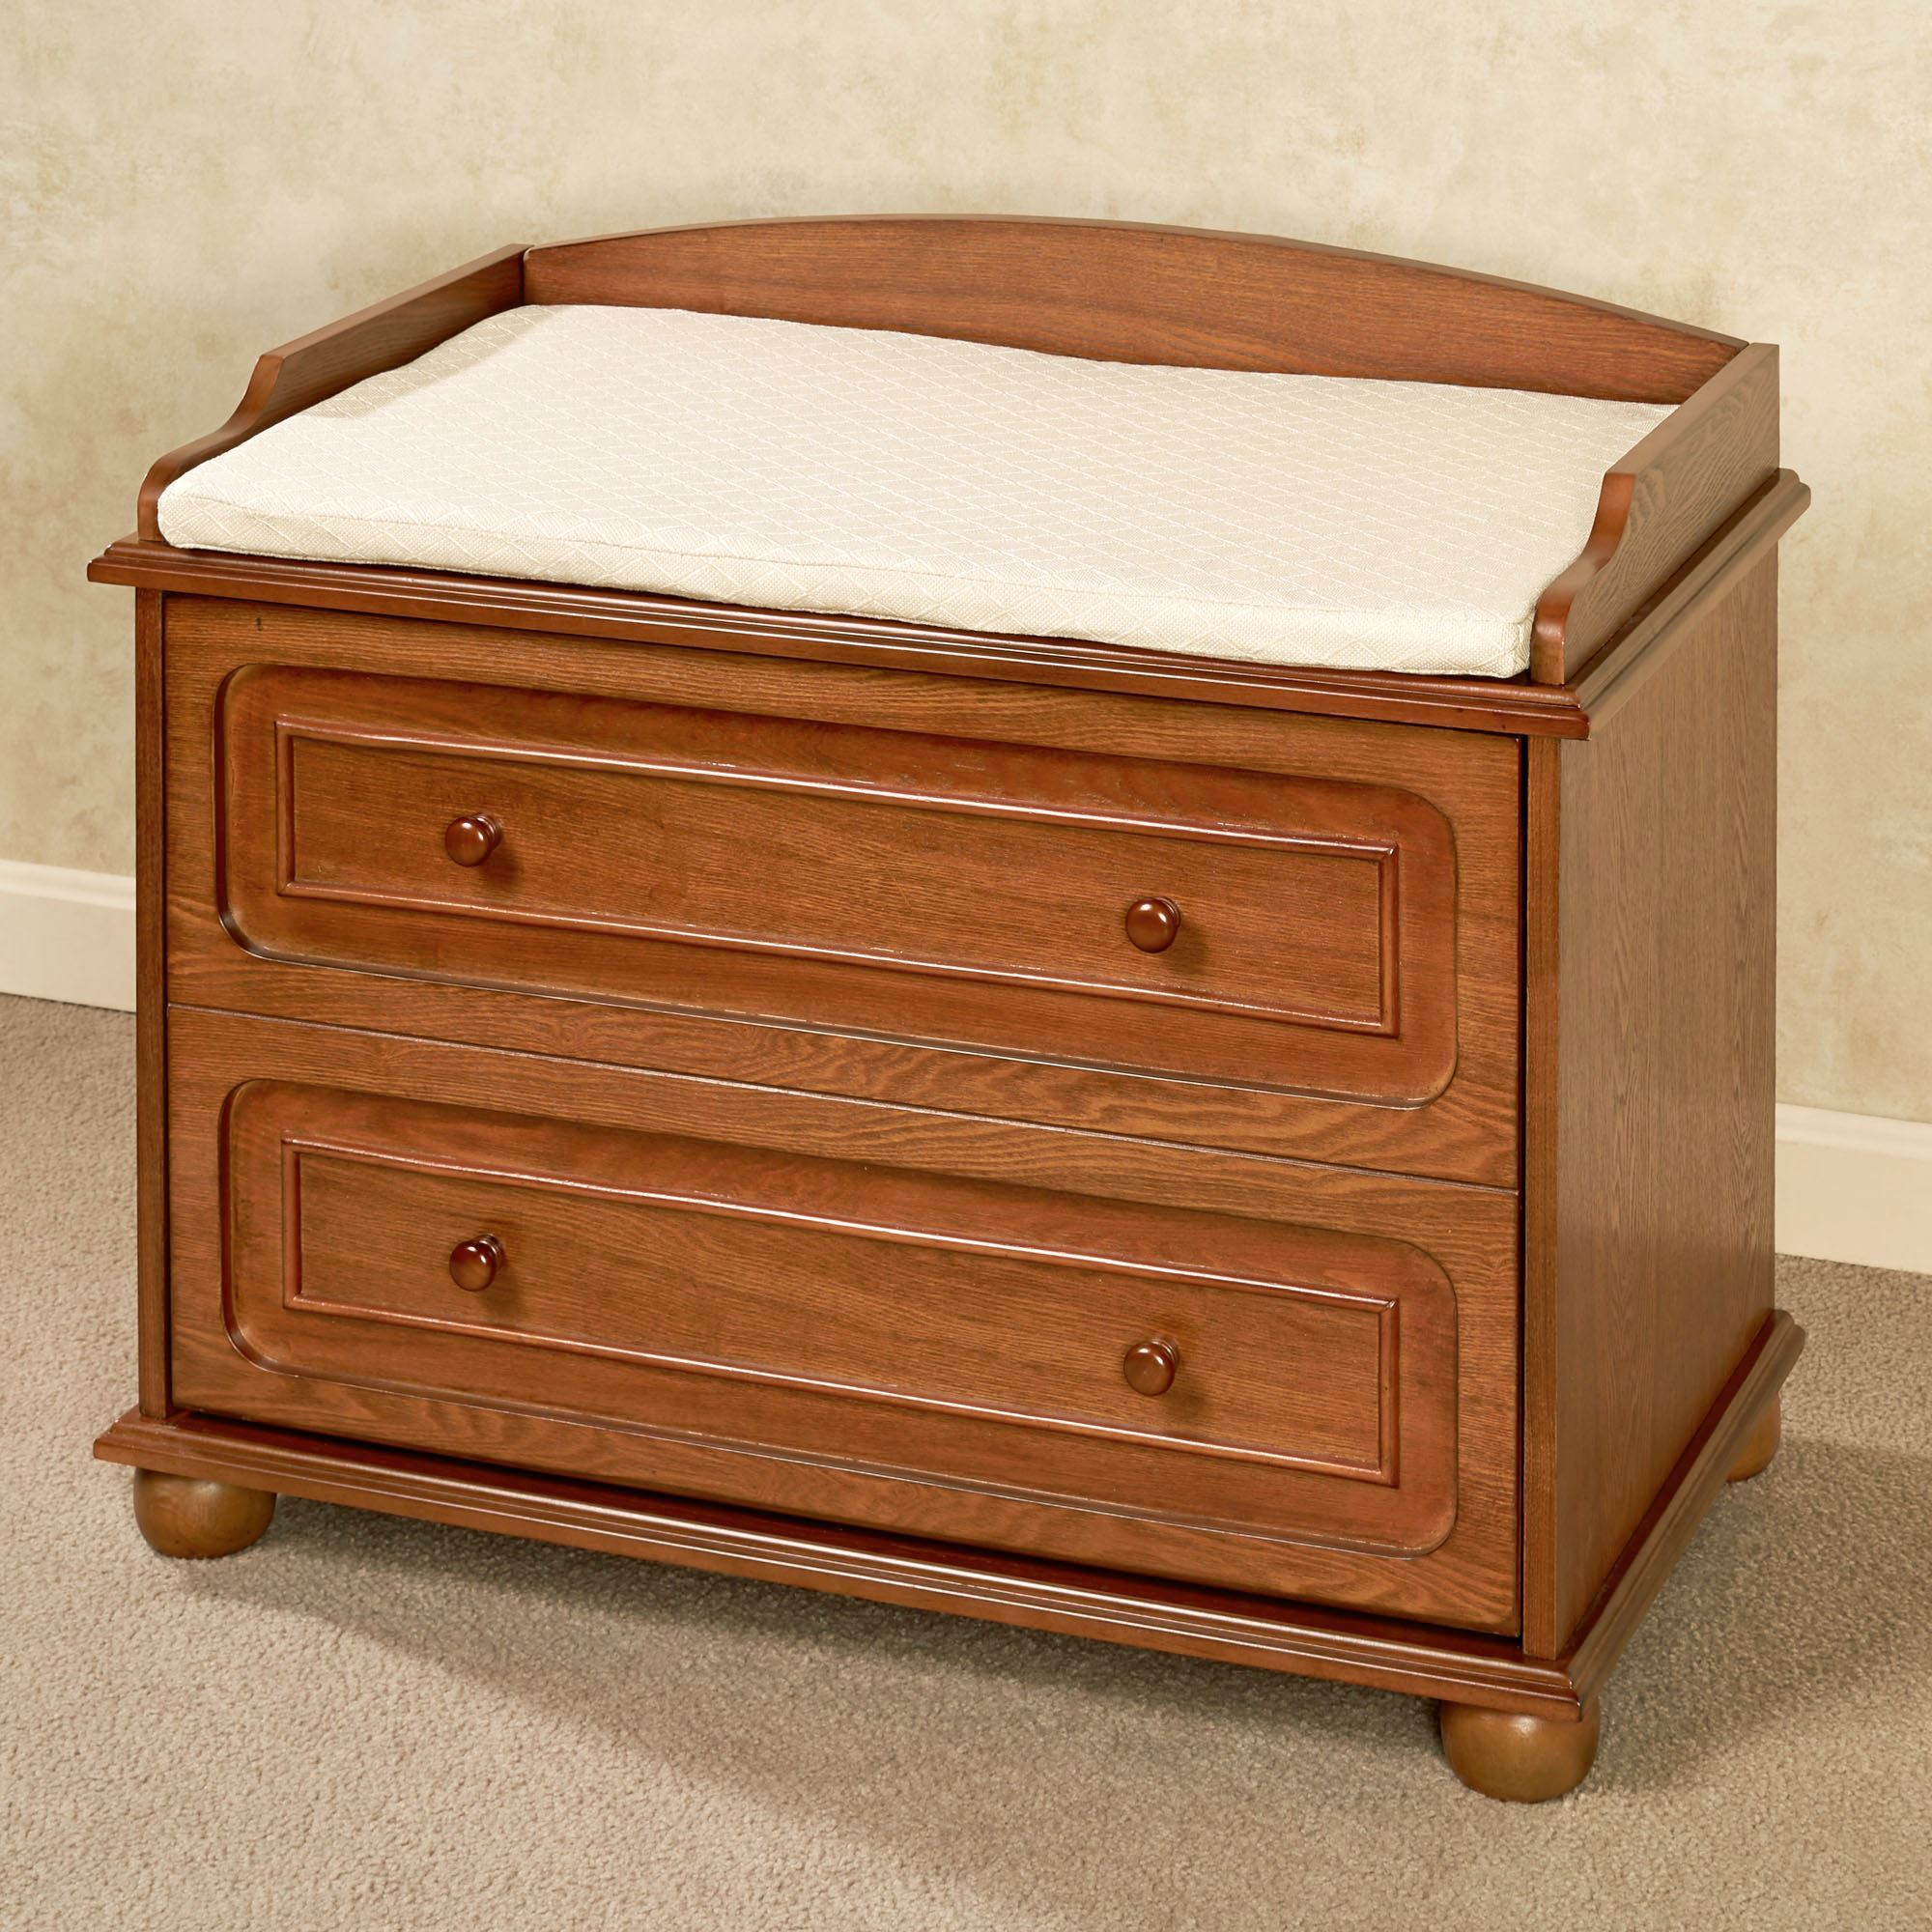 Ayden Wooden Shoe Storage Bench Windsor Oak